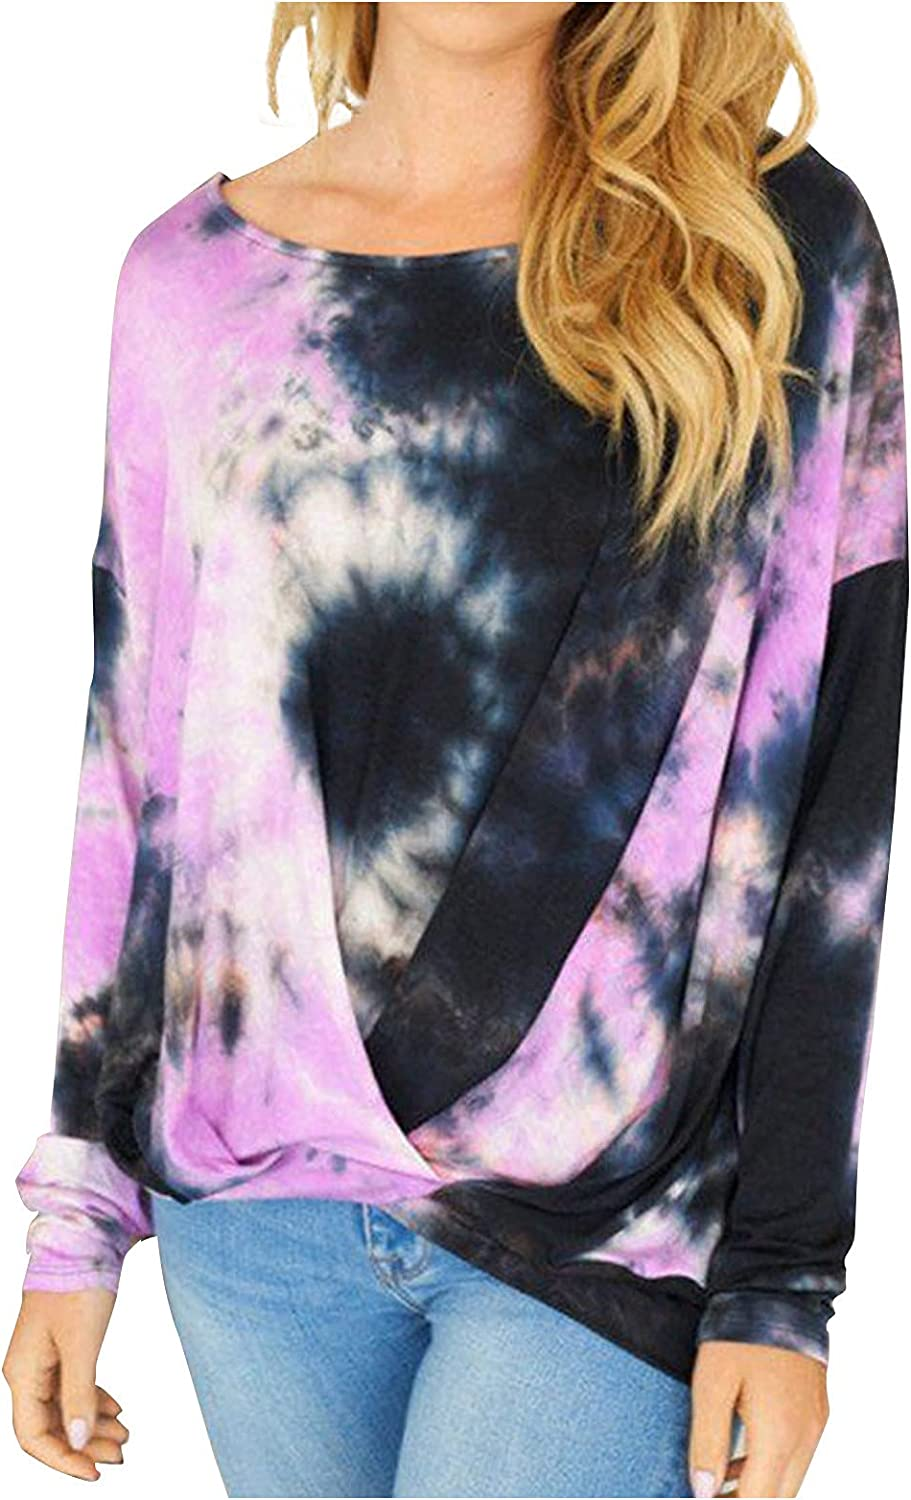 Women's Autumn And Winter Long Sleeve Printed Round Neck Loose Sweater T-Shirt Top